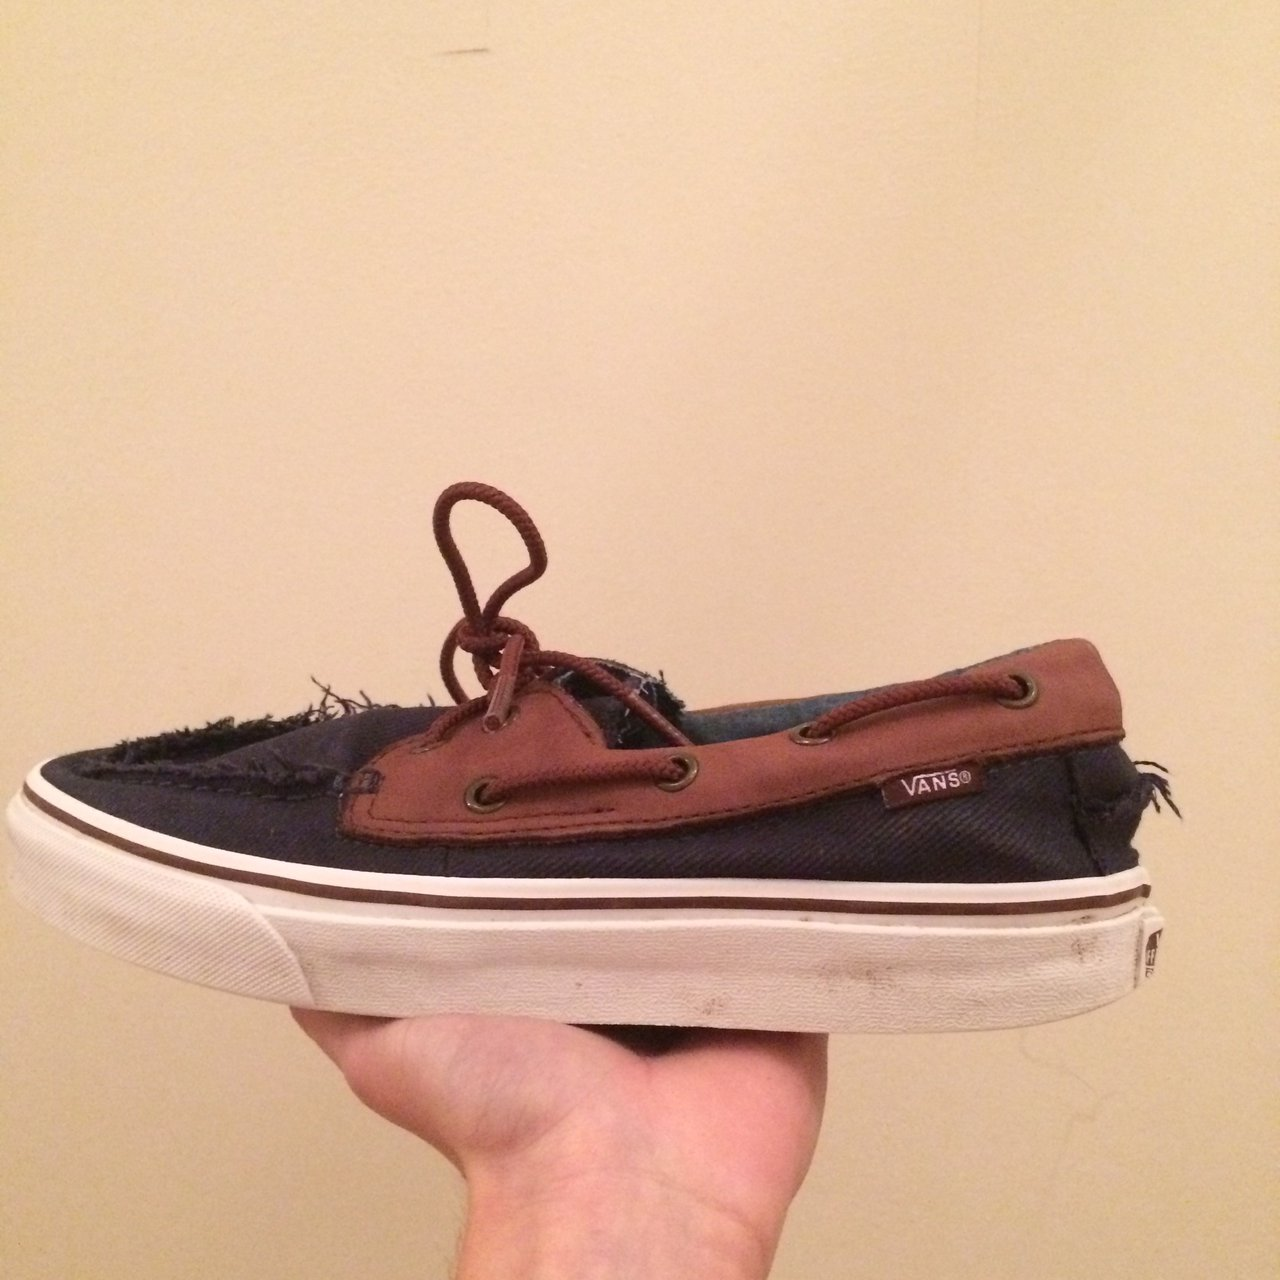 8 Uk Del Navy Blue Boat Depop Zapato Size Of Shoes Vans Barco ng1RX0